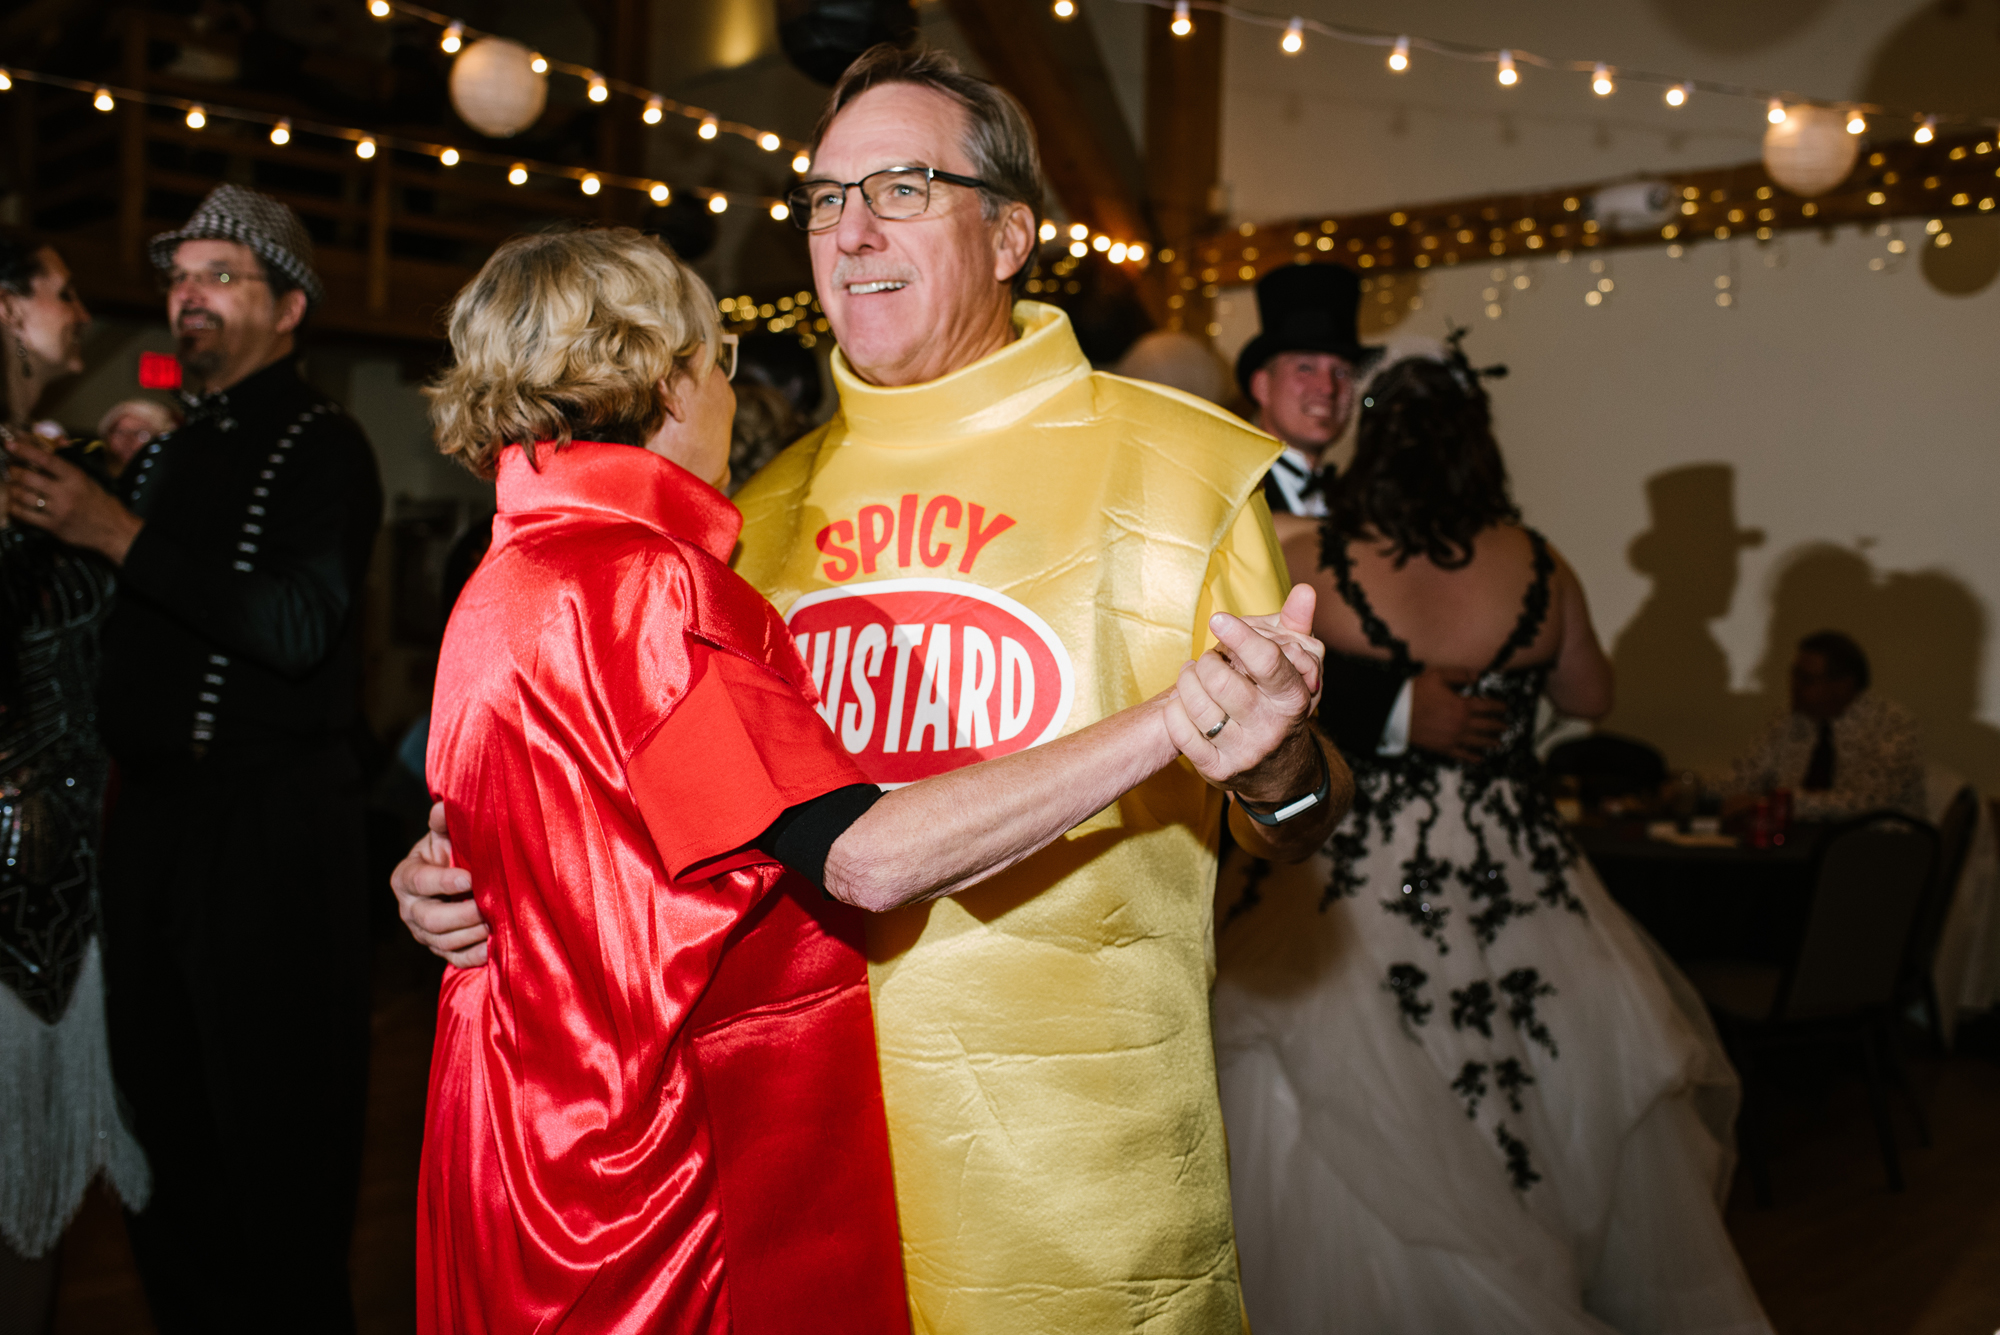 ann-arbor-michigan-halloween-themed-wedding-dancing-photos (20).jpg